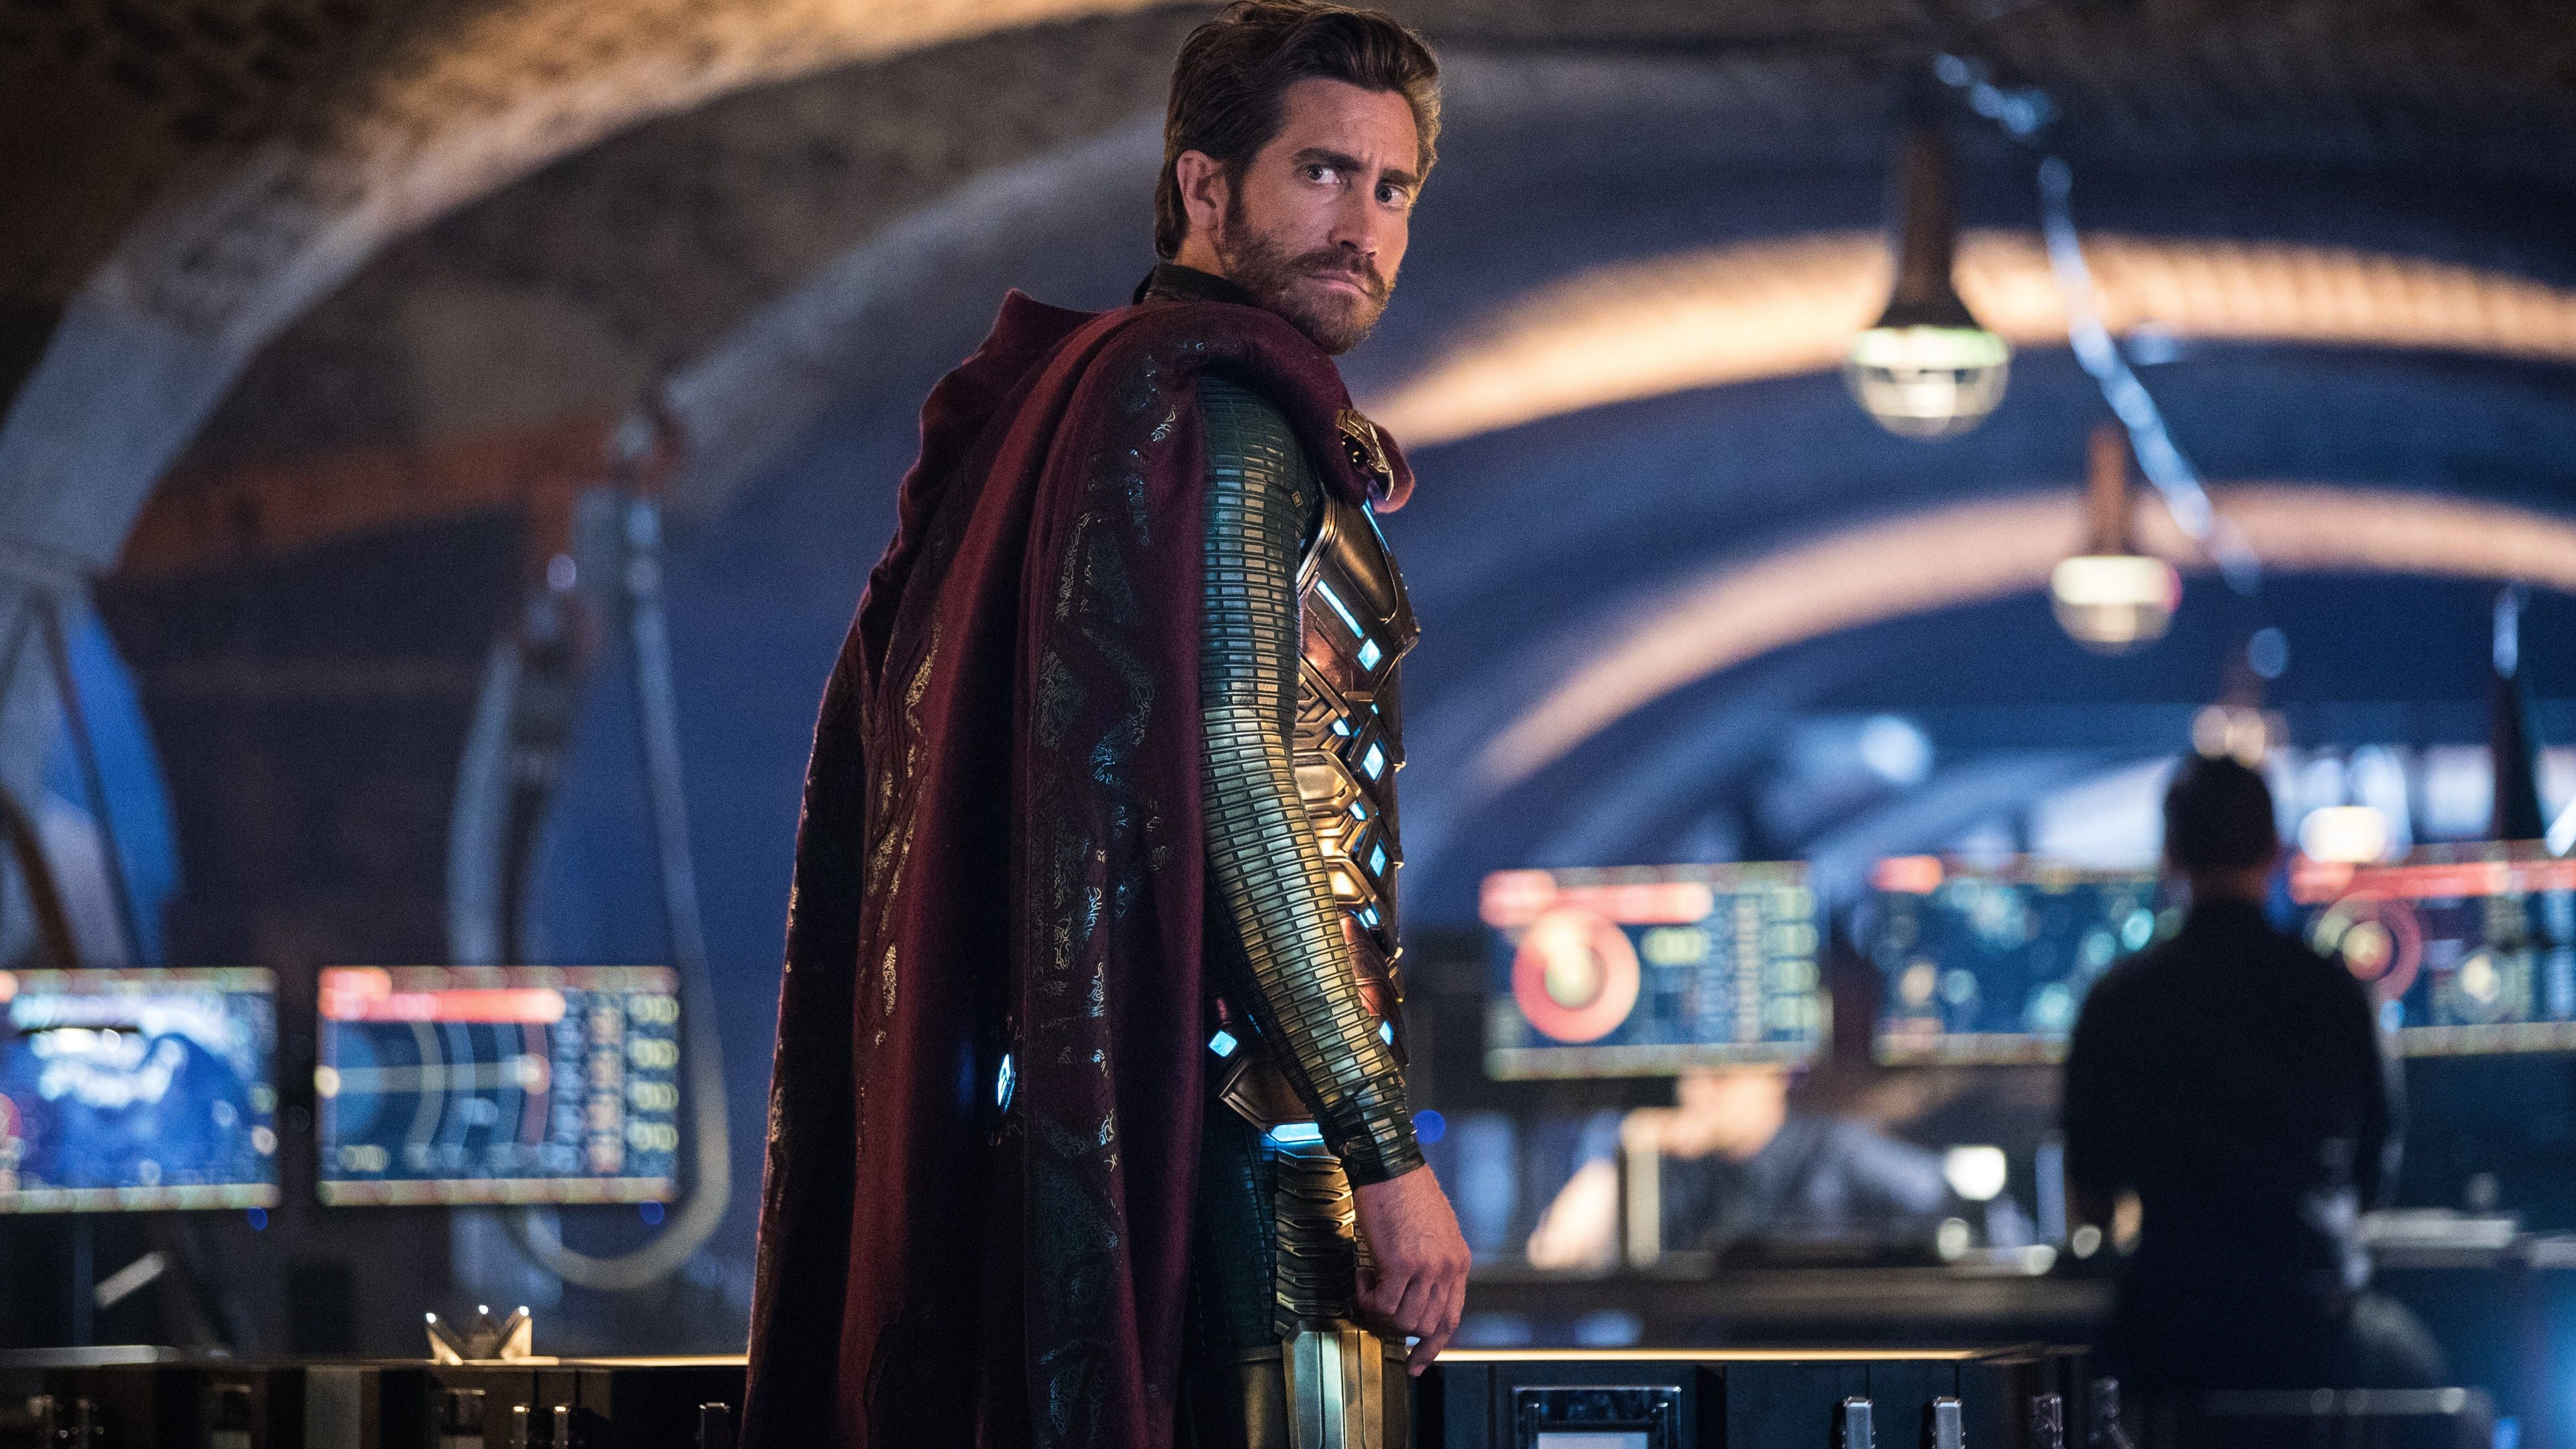 mysterio jake gyllenhaal spider man far from home 1563220839 - Mysterio Jake Gyllenhaal Spider Man Far From Home - superheroes wallpapers, spiderman far from home wallpapers, mysterio wallpapers, movies wallpapers, hd-wallpapers, 5k wallpapers, 4k-wallpapers, 2019 movies wallpapers